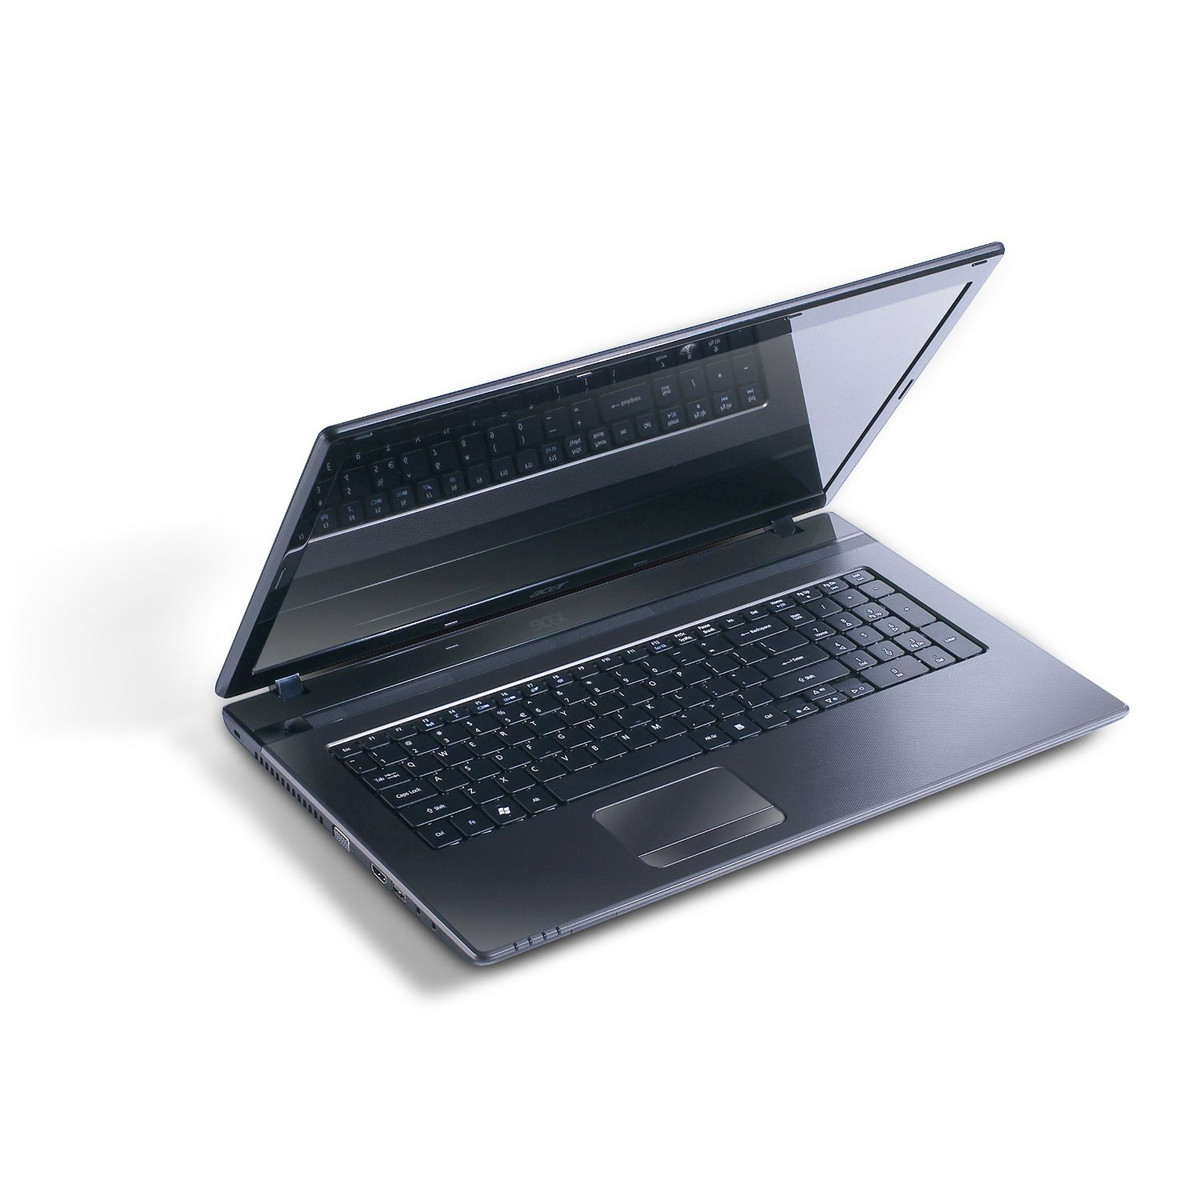 NEW DRIVER: ACER ASPIRE 7750